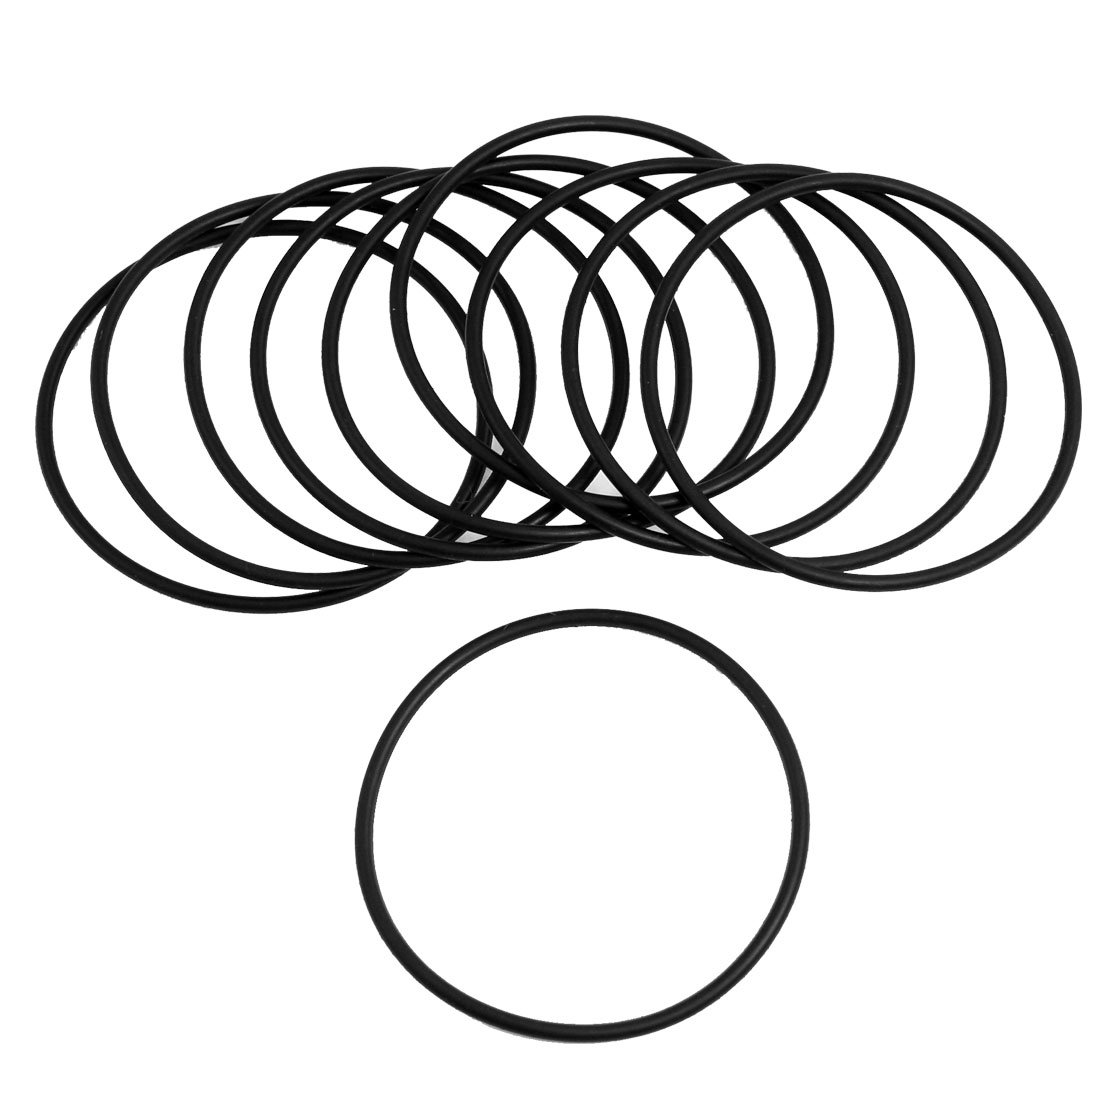 10 Pcs Black Rubber 60mm x 2.5mm Oil Seal O Rings Gaskets Washers